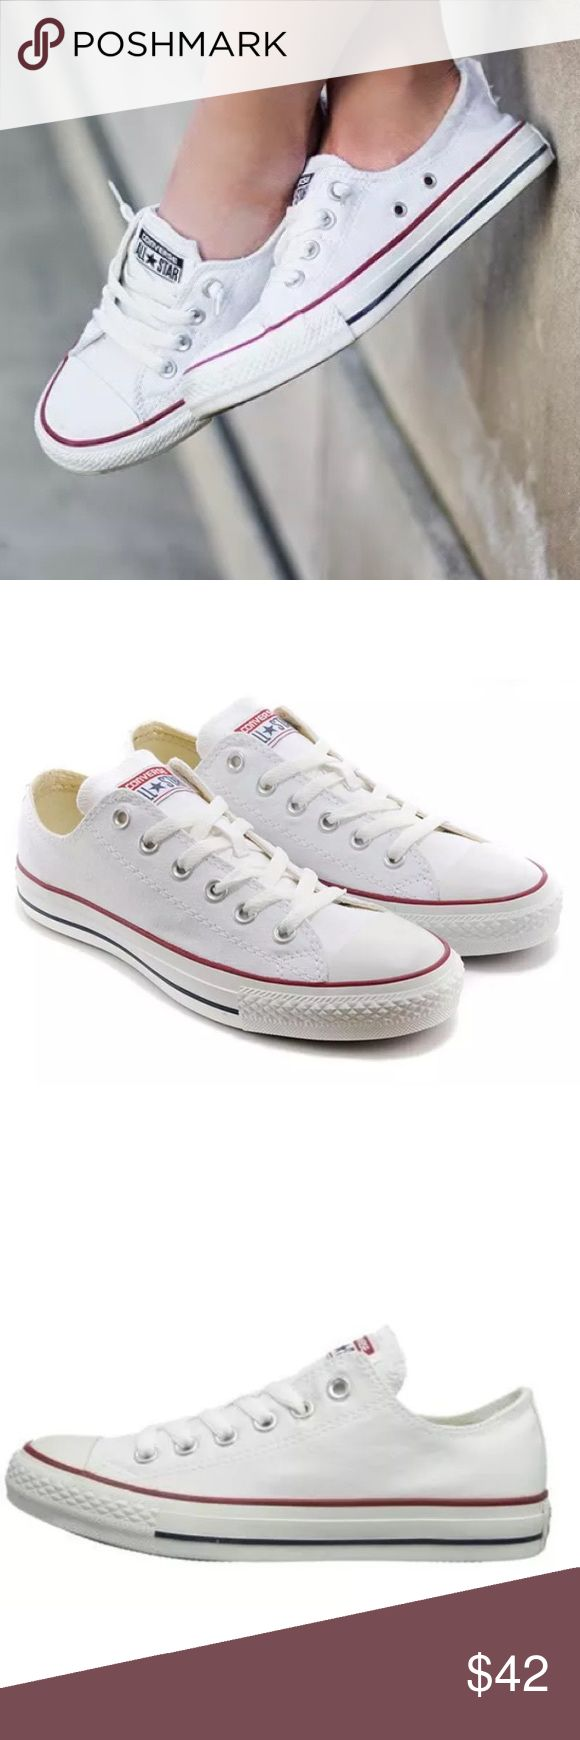 List! Classic White Converse All-Stars! NEW! The shoe that never goes out of style! Women's size 7.5, men's size 6. New in box. Converse Shoes Sneakers